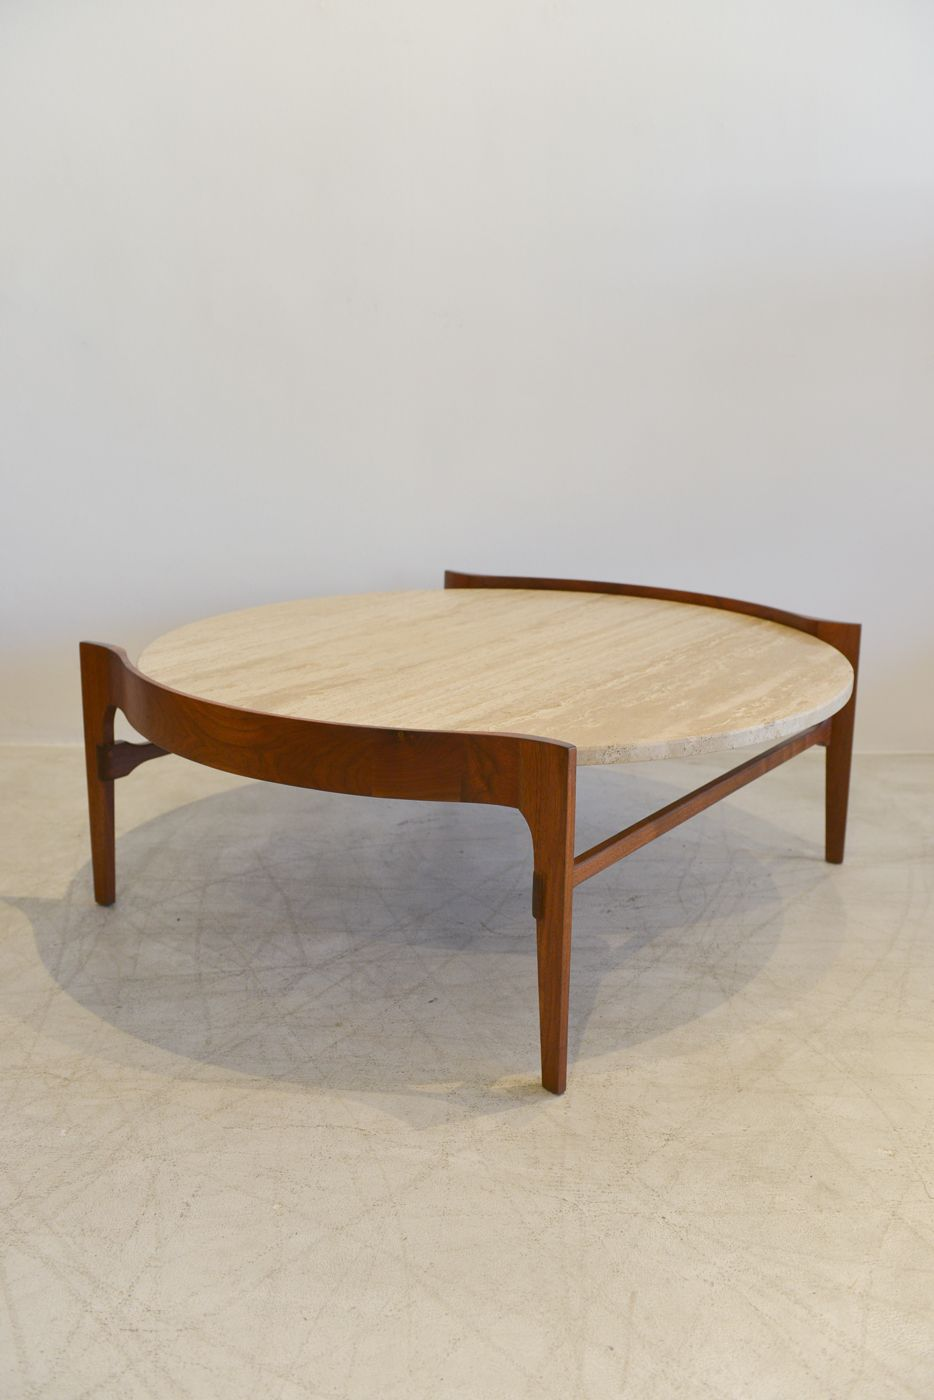 Sculpted Walnut And Travertine Coffee Table By Gordonu0027s Fine Furniture Made  In The 50u0027s Measures 40.25